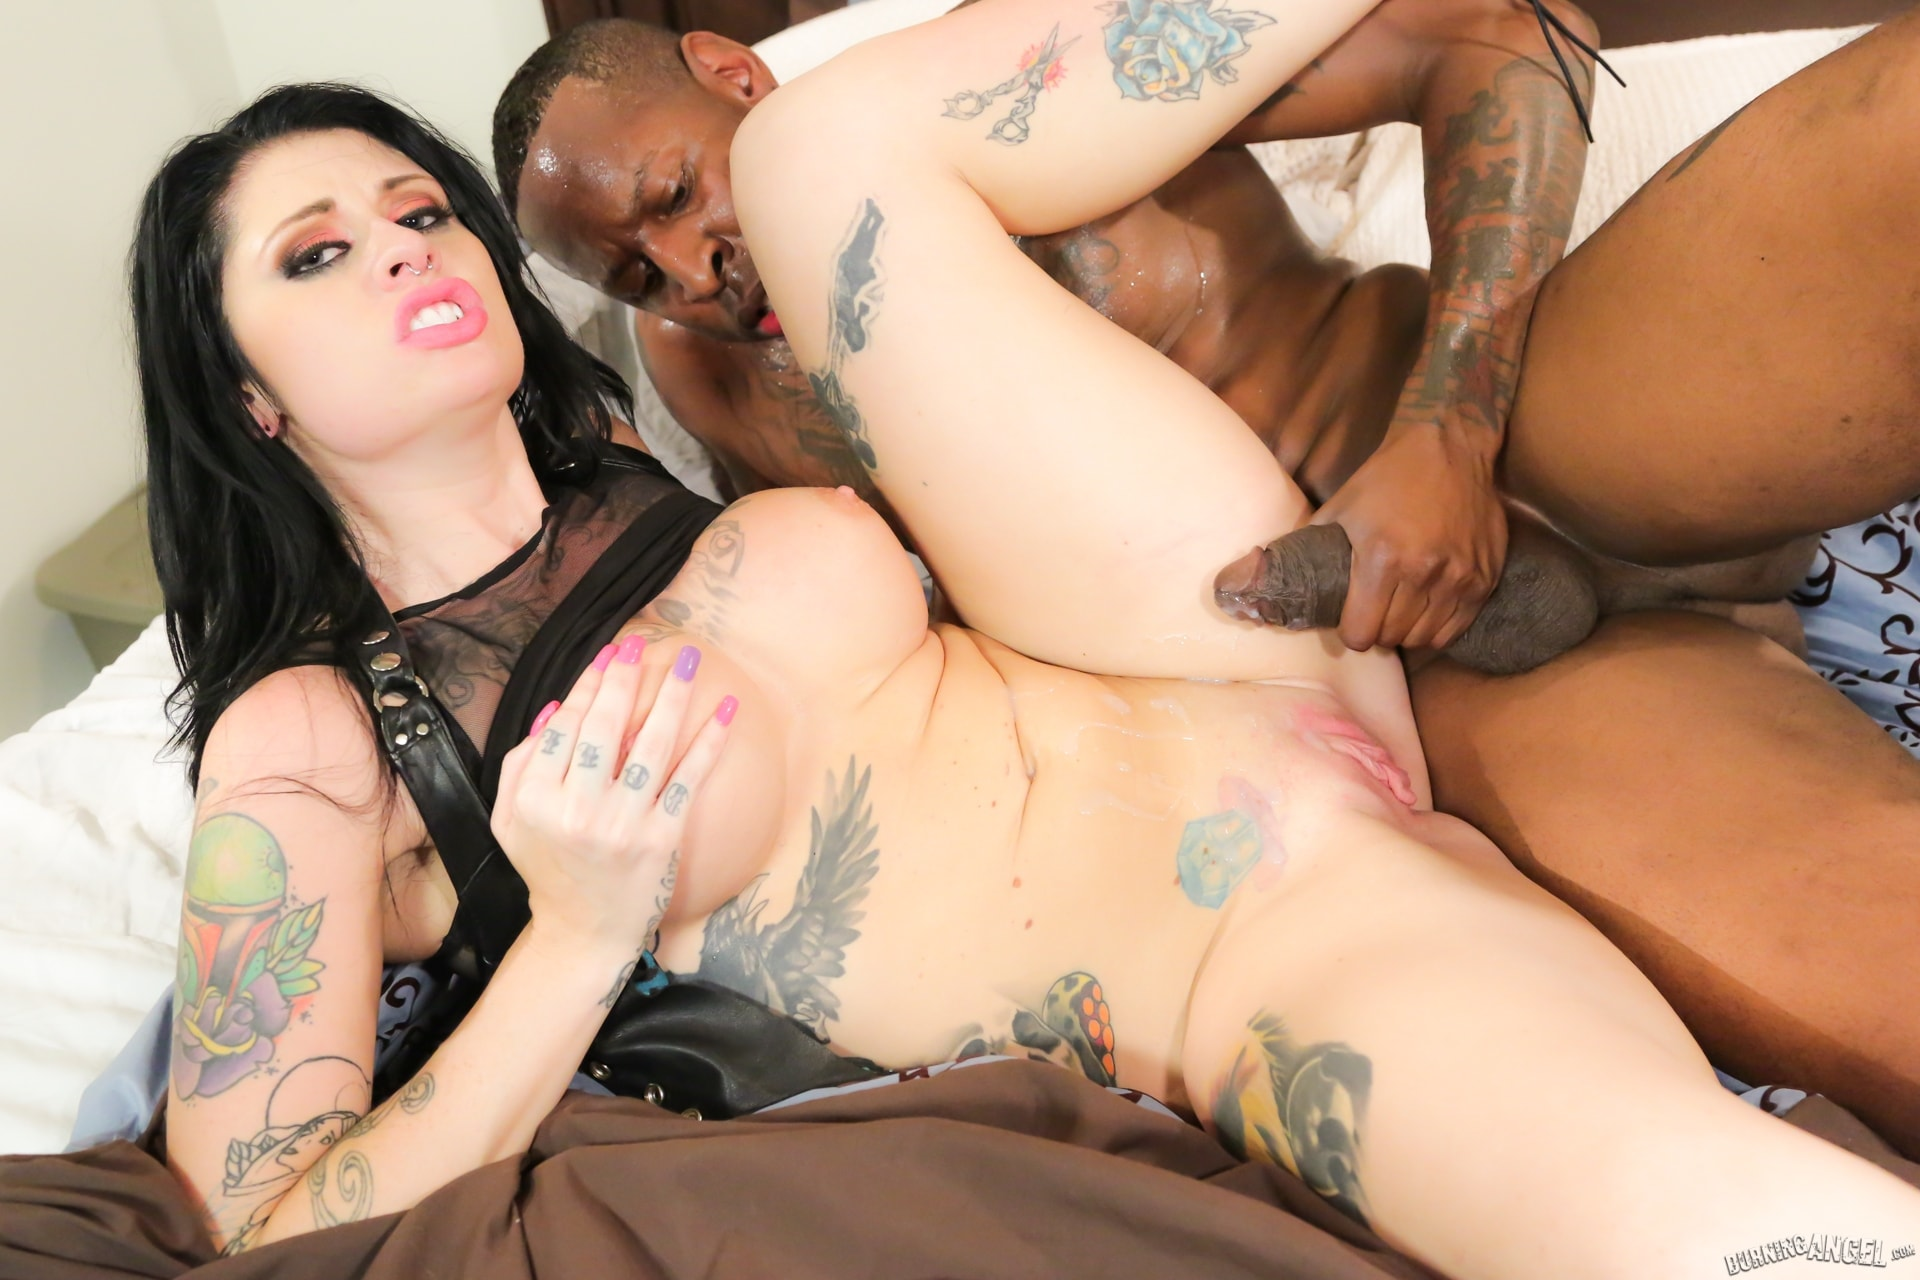 Xxx the band, sleep naked girls pussy